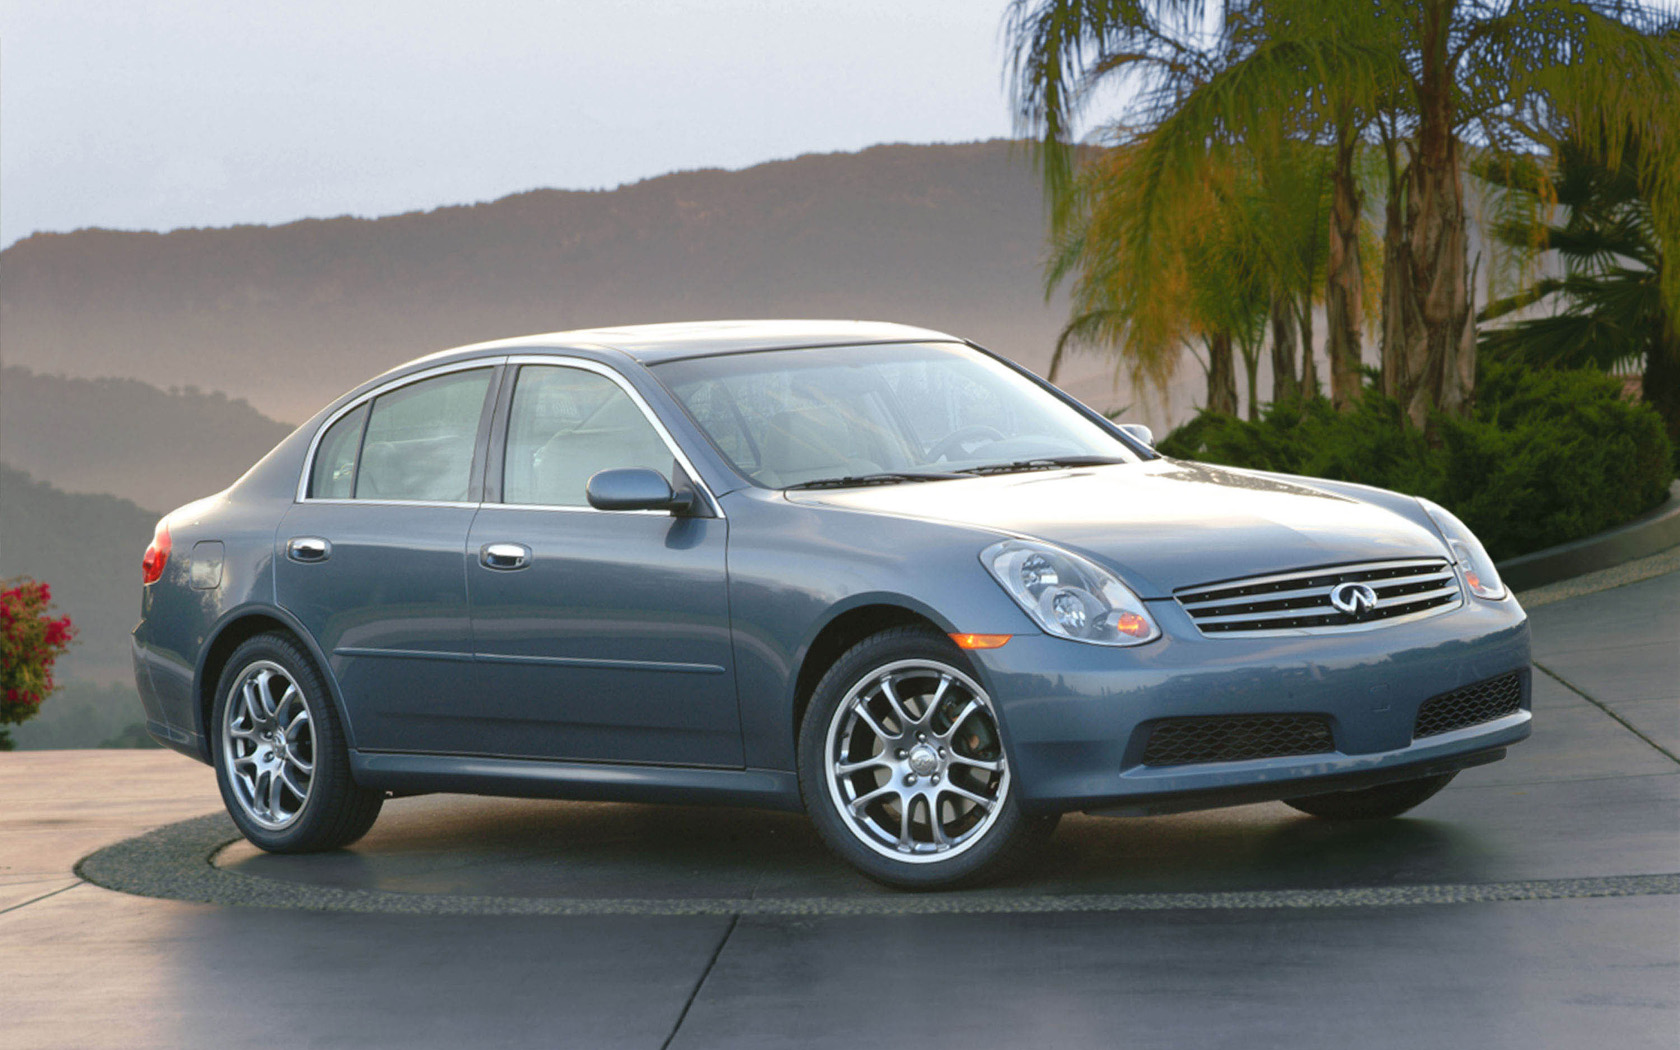 99 reviews g35 sport on margojoyo underrated ride of the week 0506 infiniti g35 sedan the vanachro Image collections